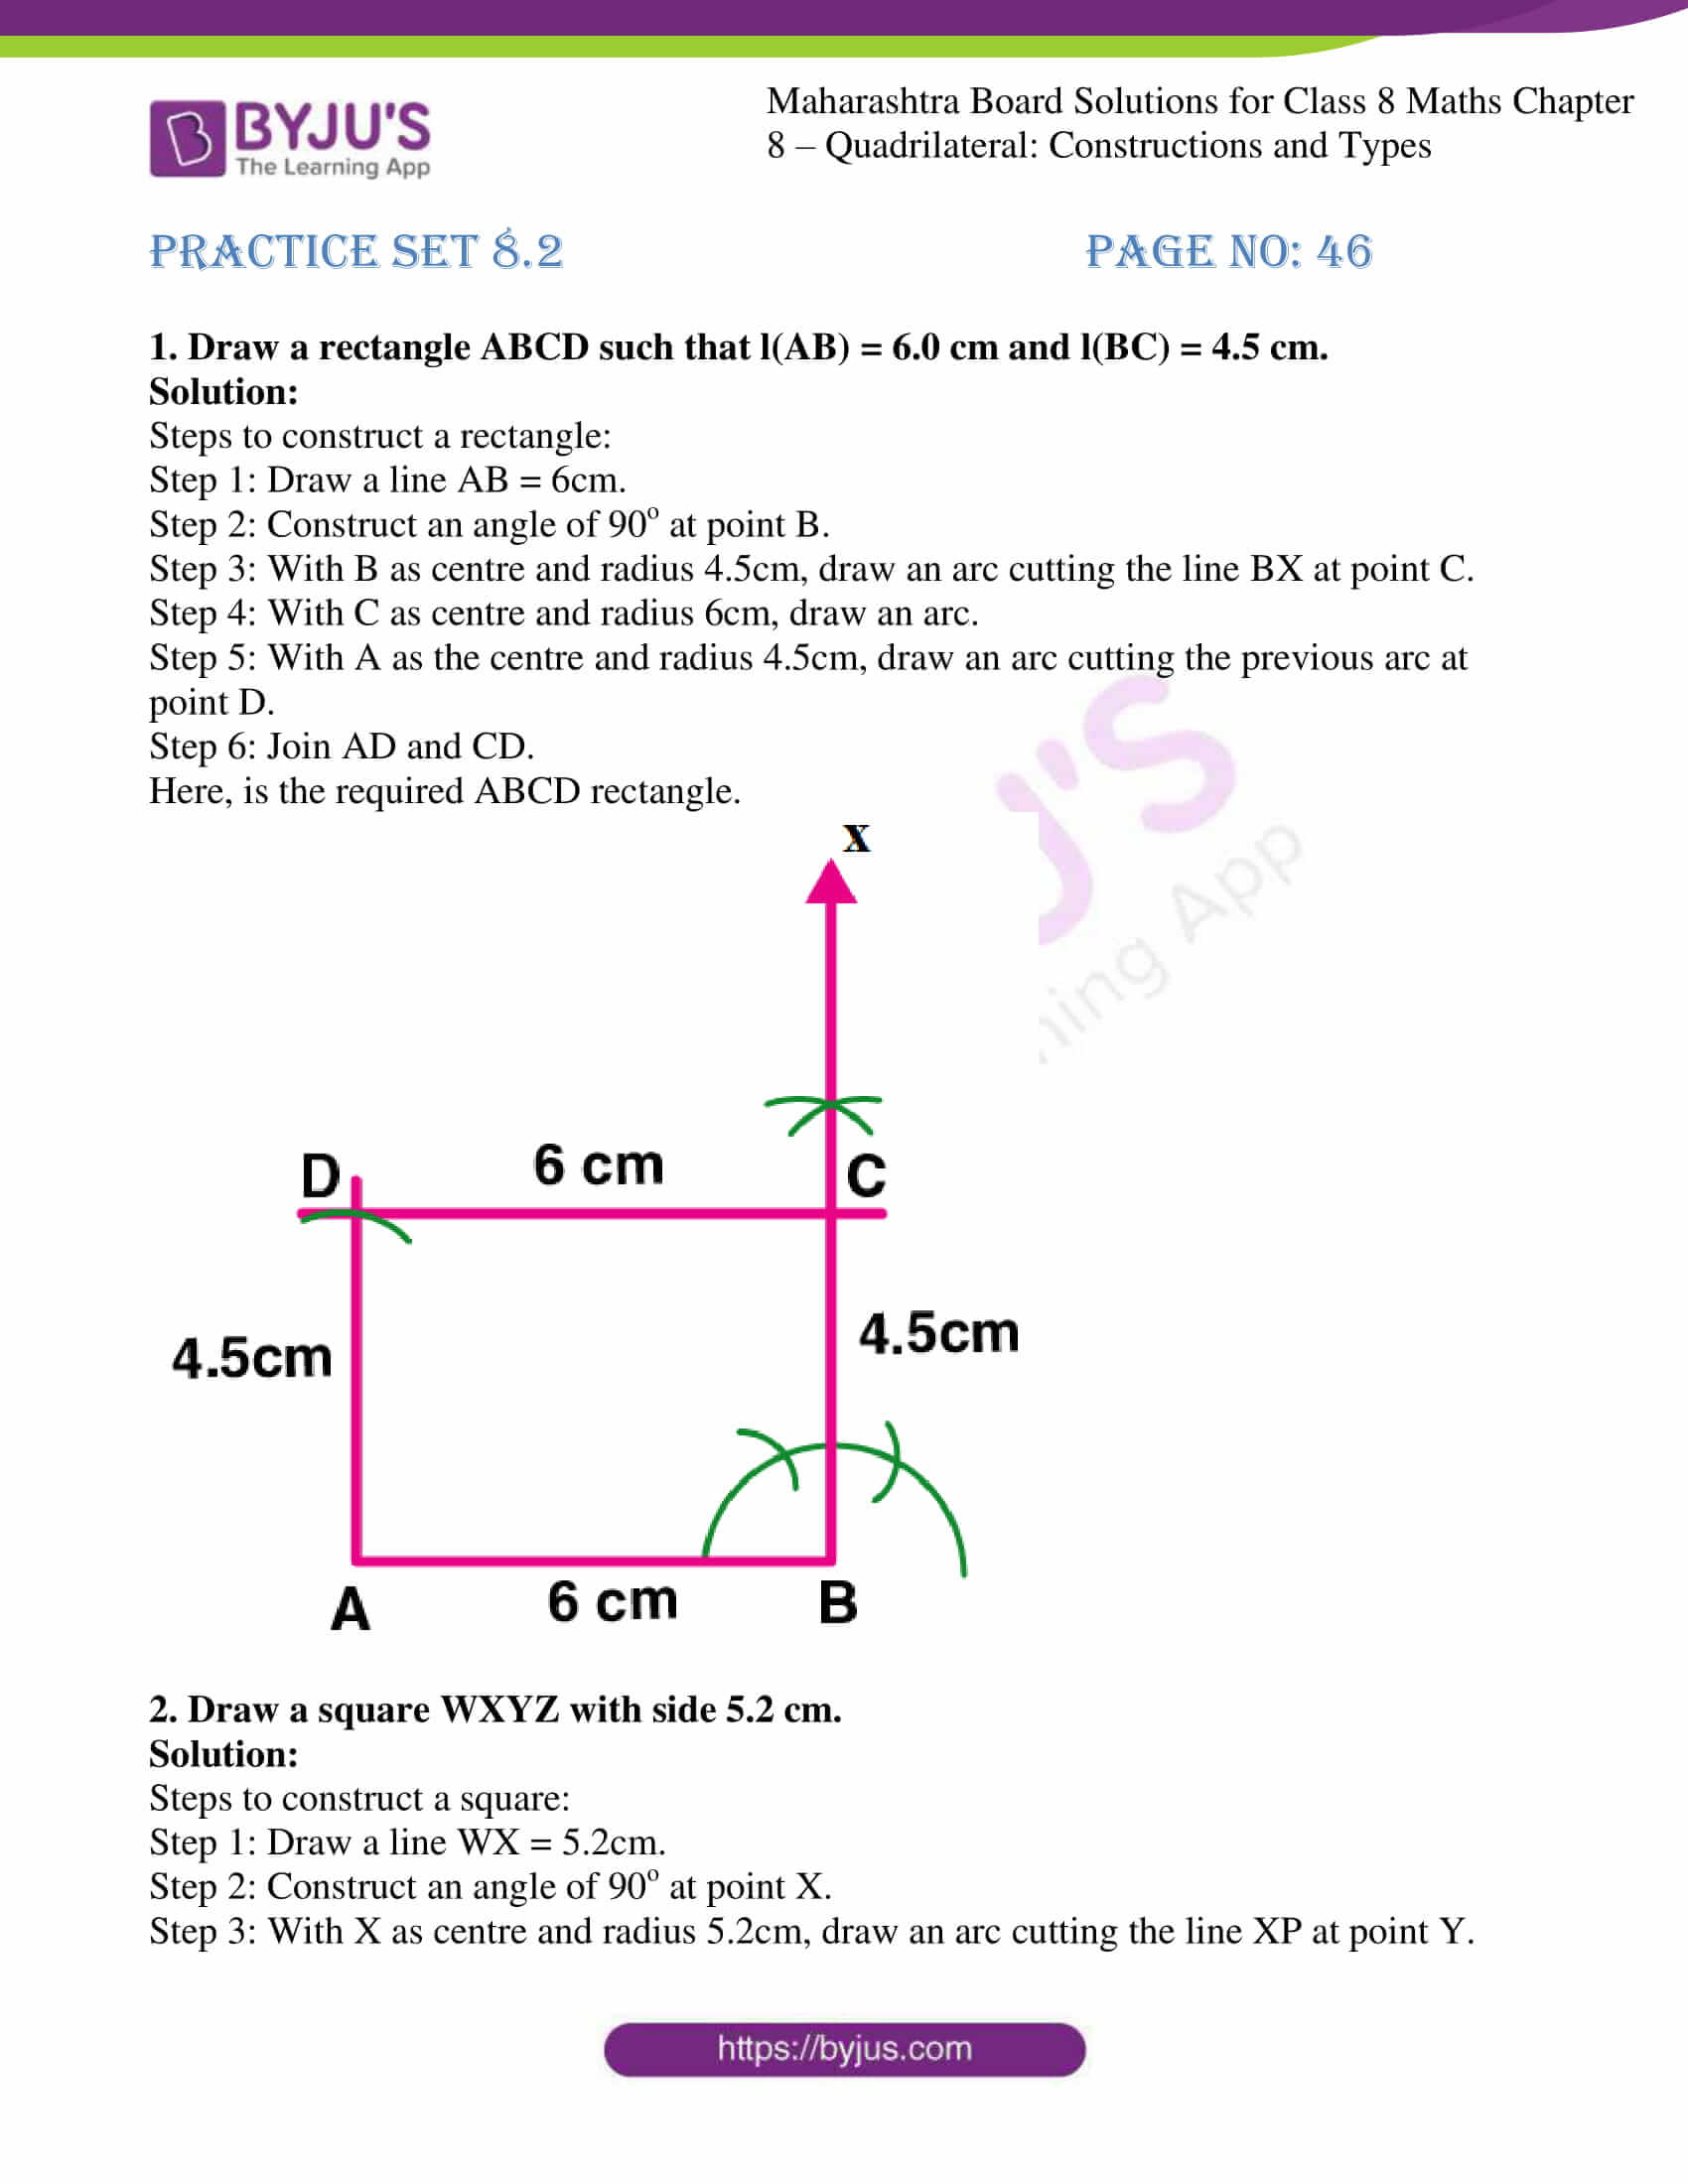 msbshse sol for class 8 maths chapter 8 06